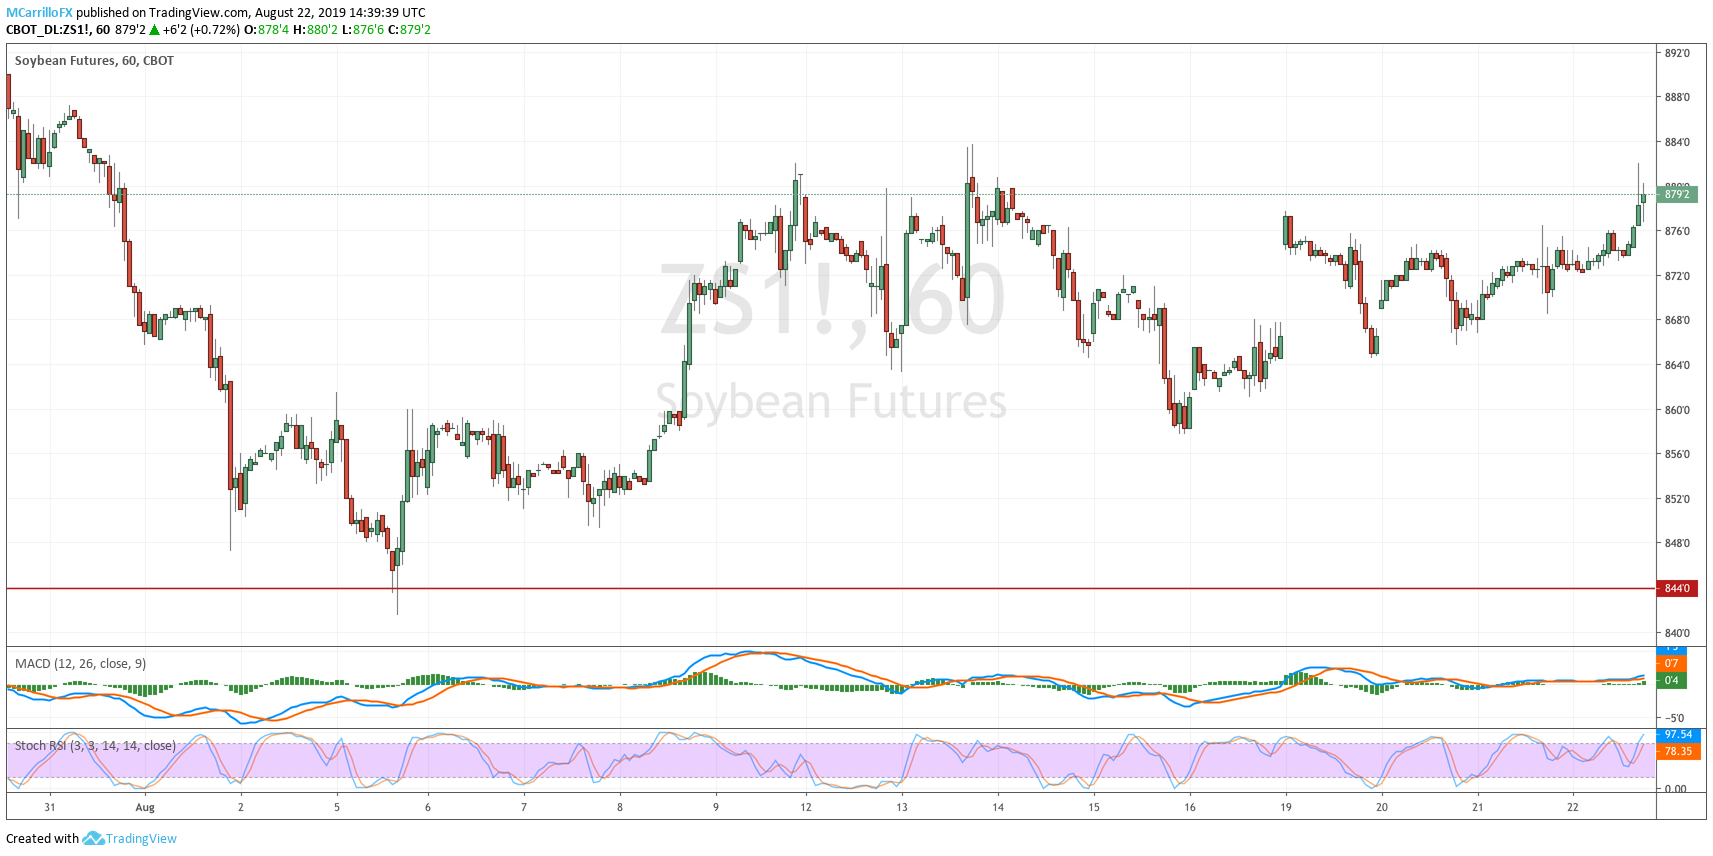 ZS1 Soybean Futures 1-hour chart August 22